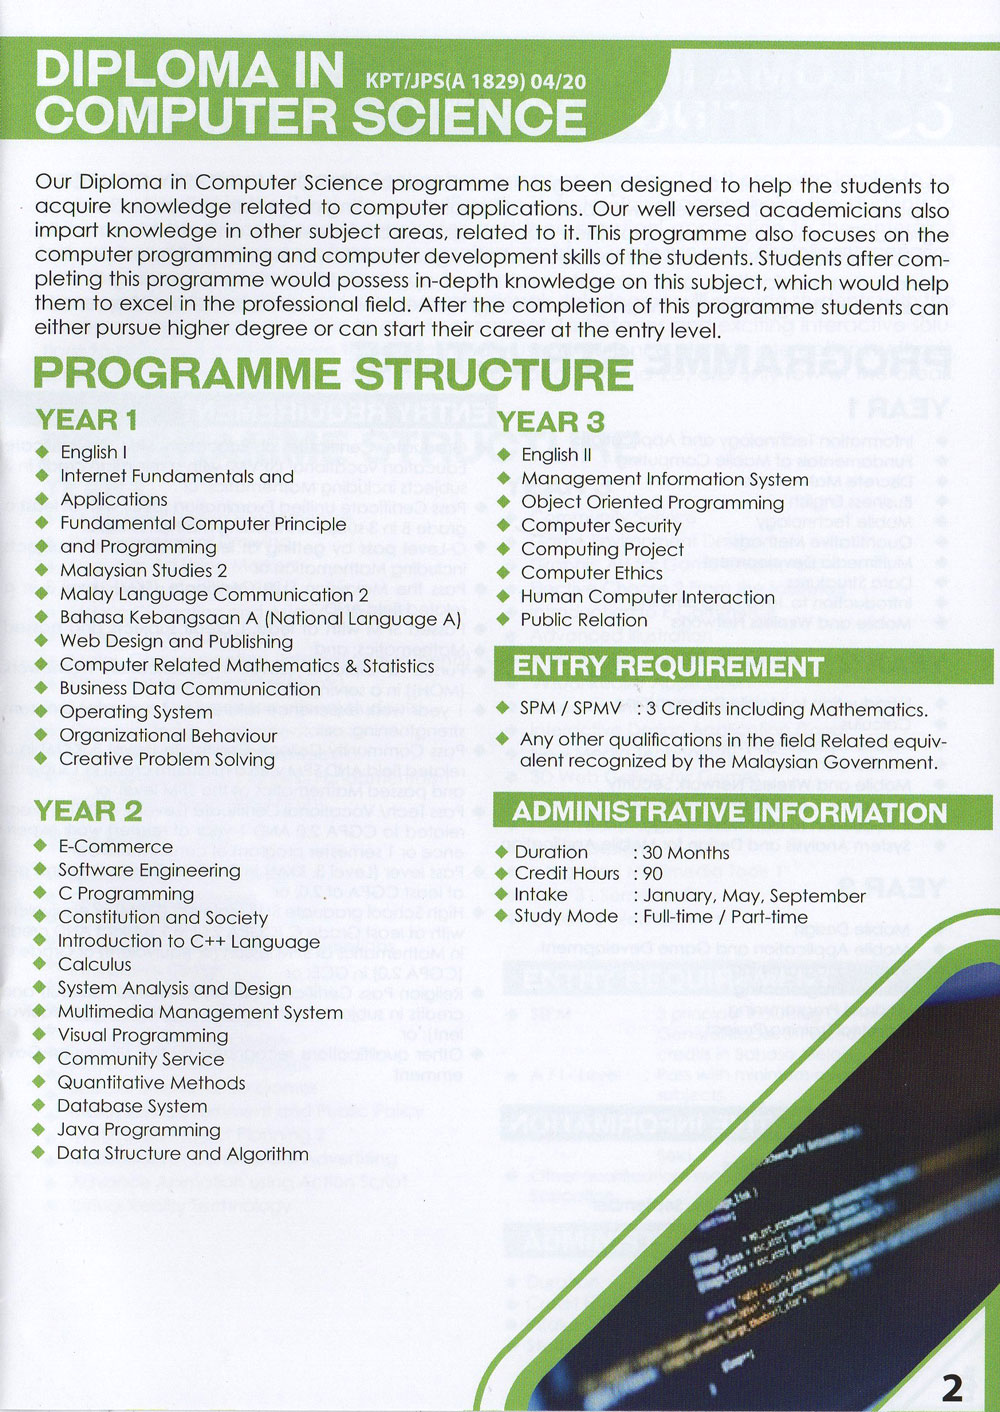 Diploma-In-Computer-Science-Lincoln-University-College